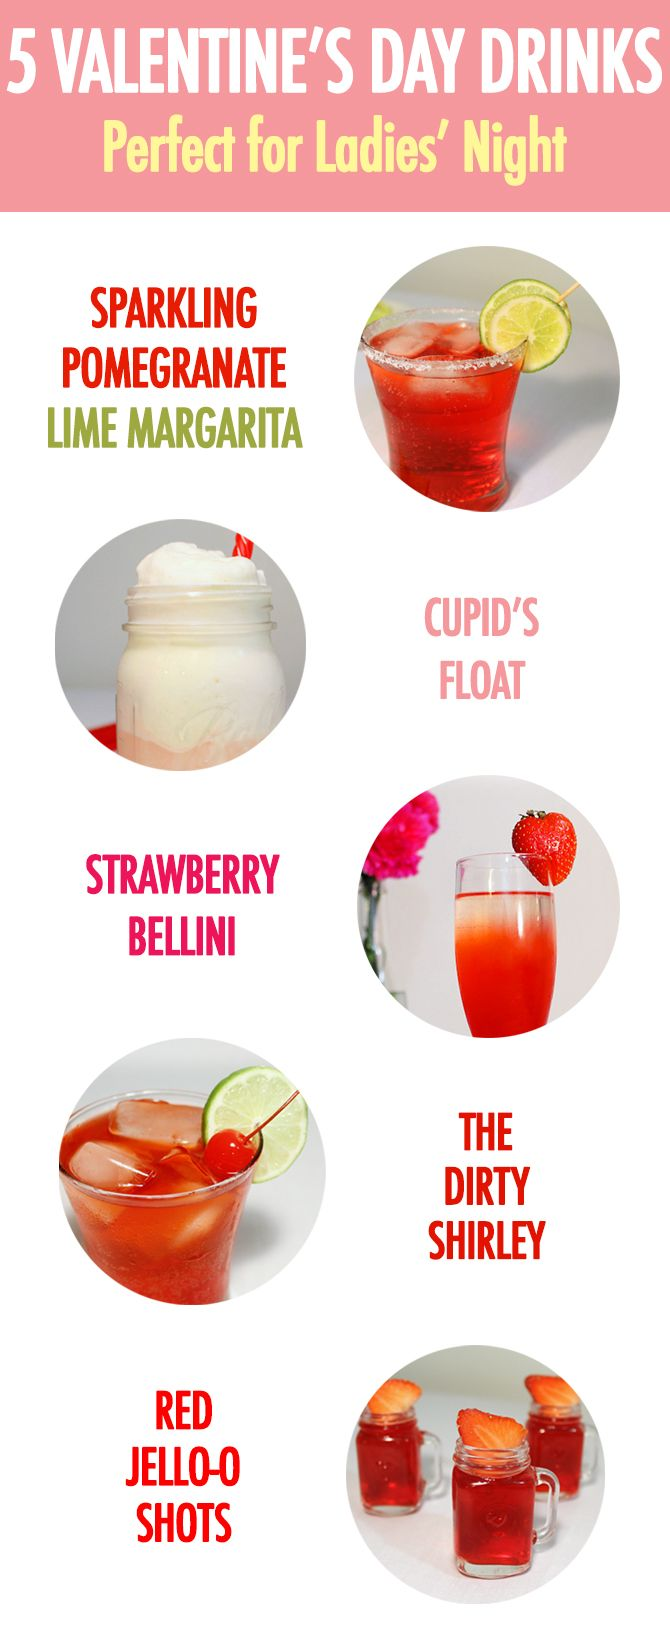 5 3-ingredient drinks perfect for a Lady's Night.